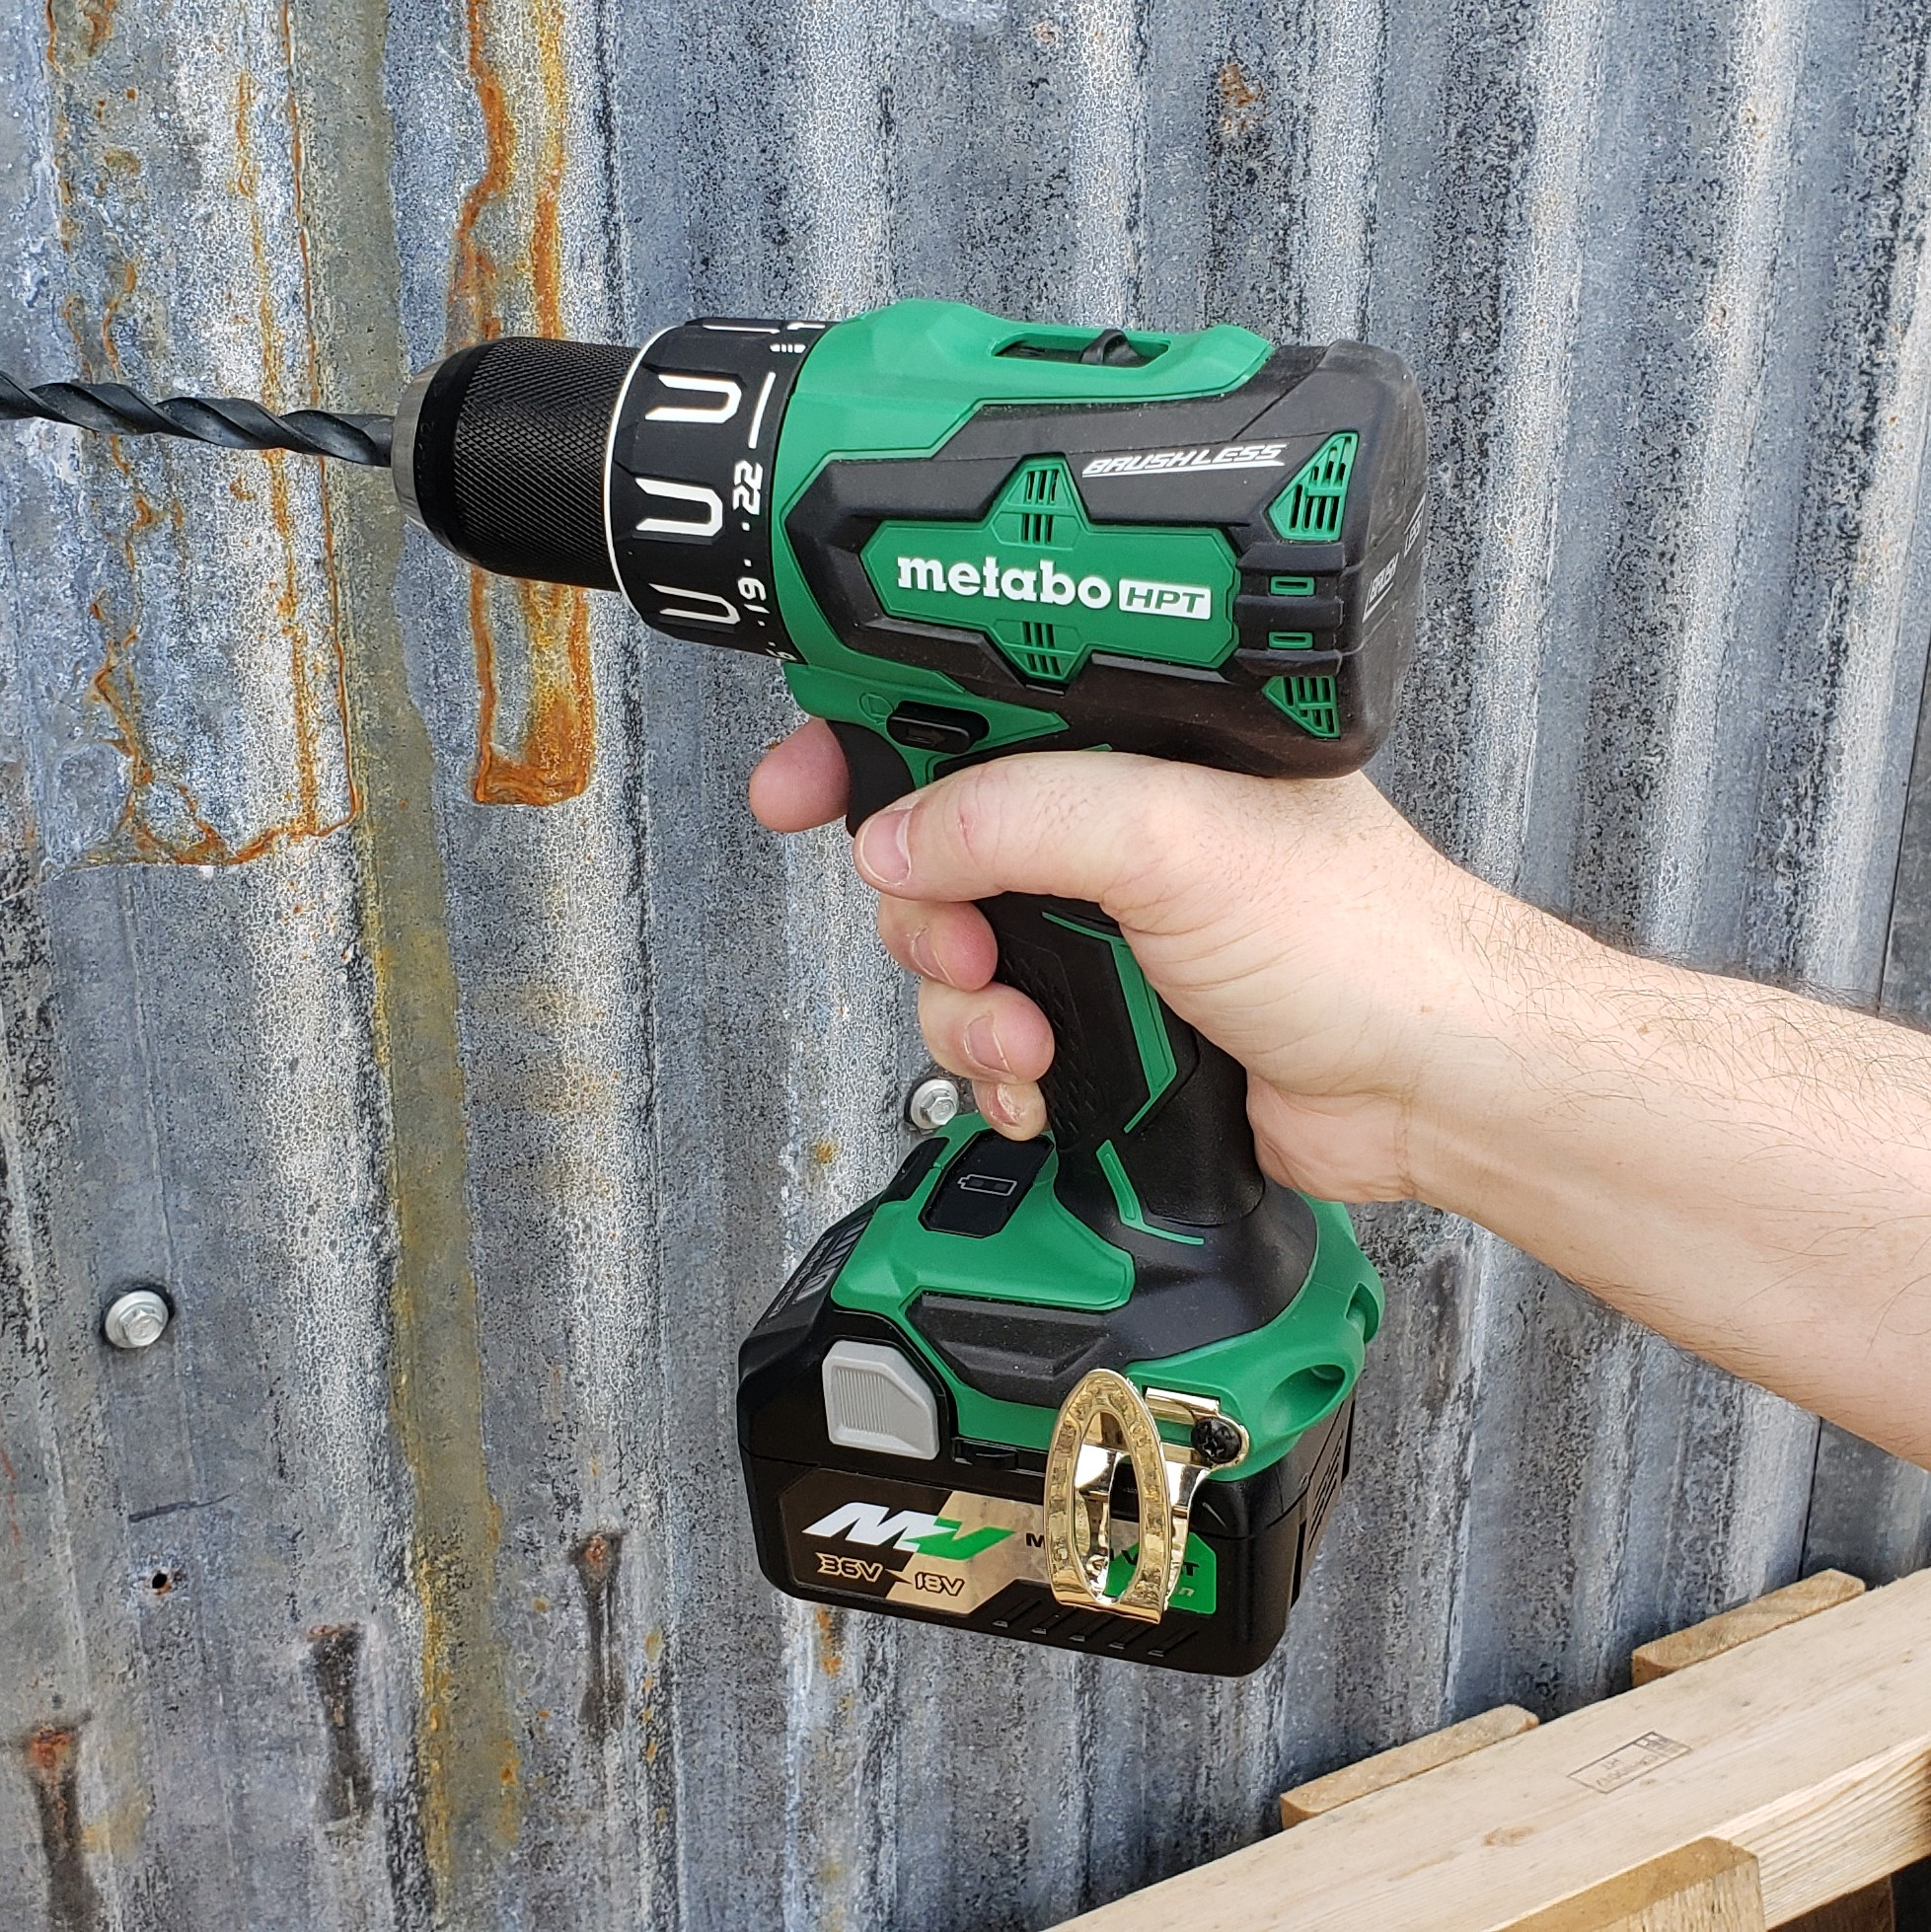 Drill driver in action